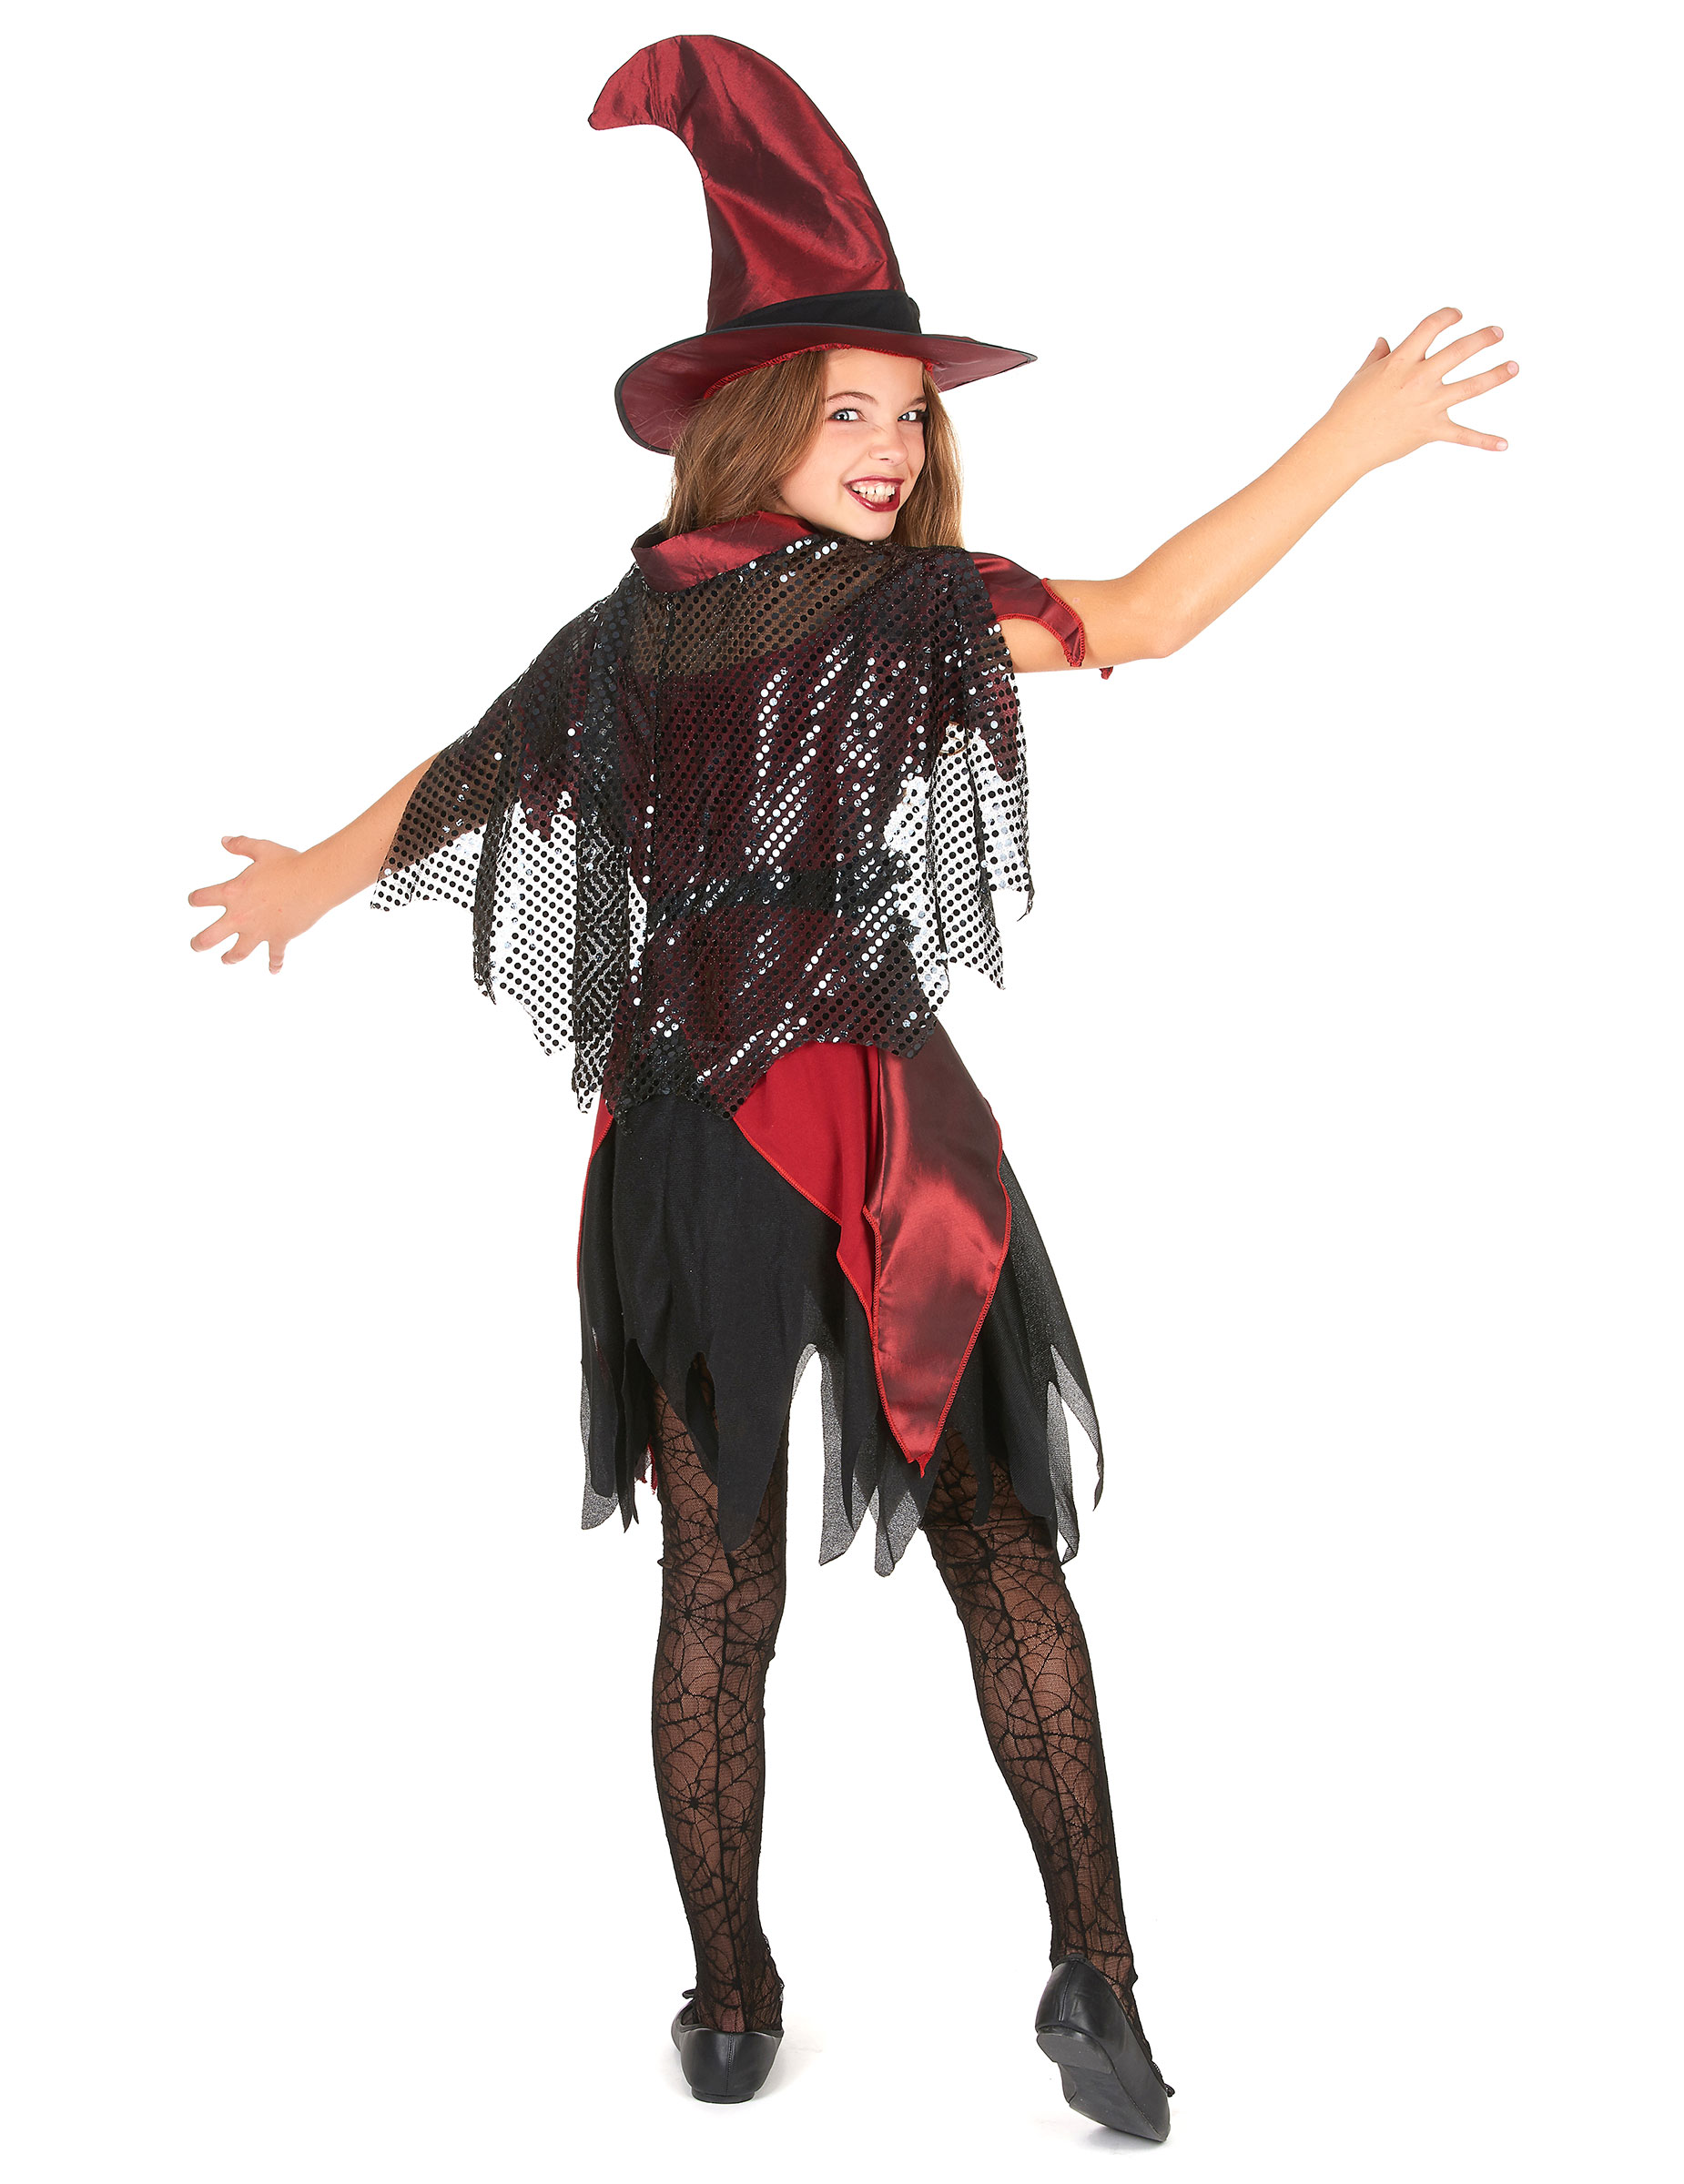 D guisement sorci re fille halloween d coration - Deguisement fille halloween ...